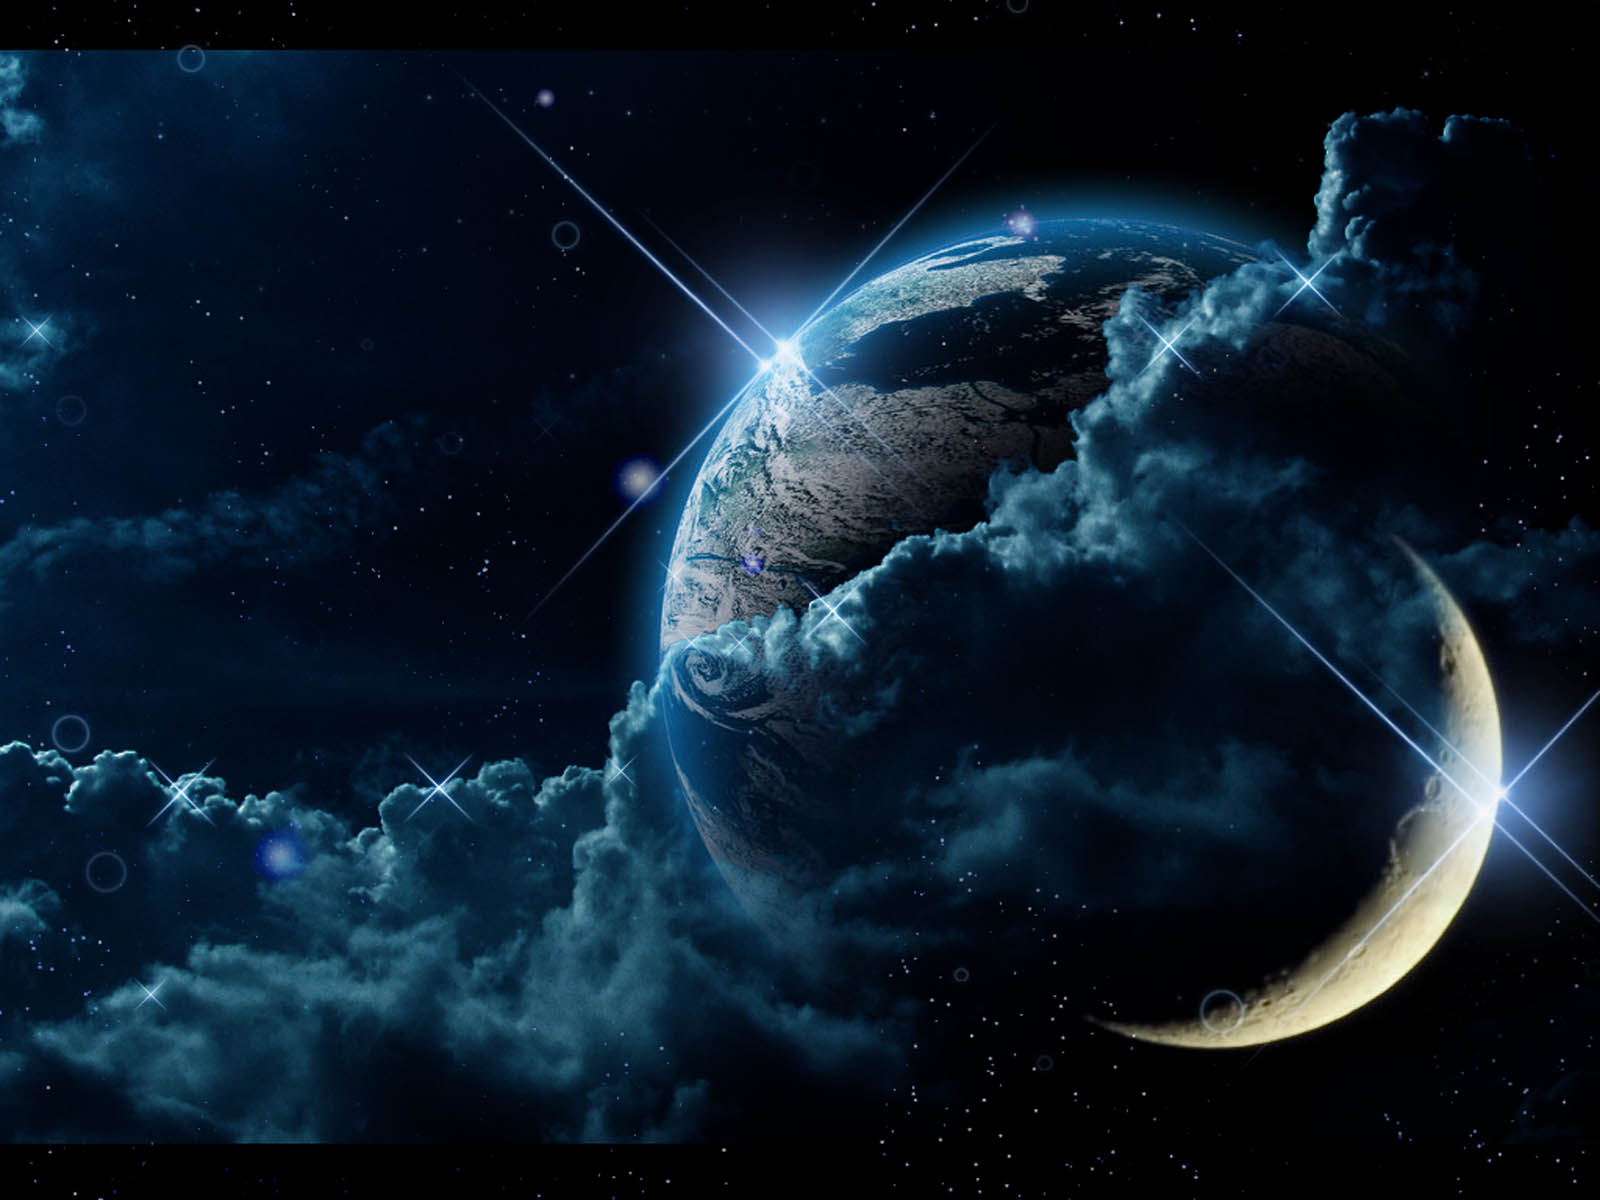 Beautiful 3d Love Wallpapers Wallpapers Moon Fantasy Wallpapers